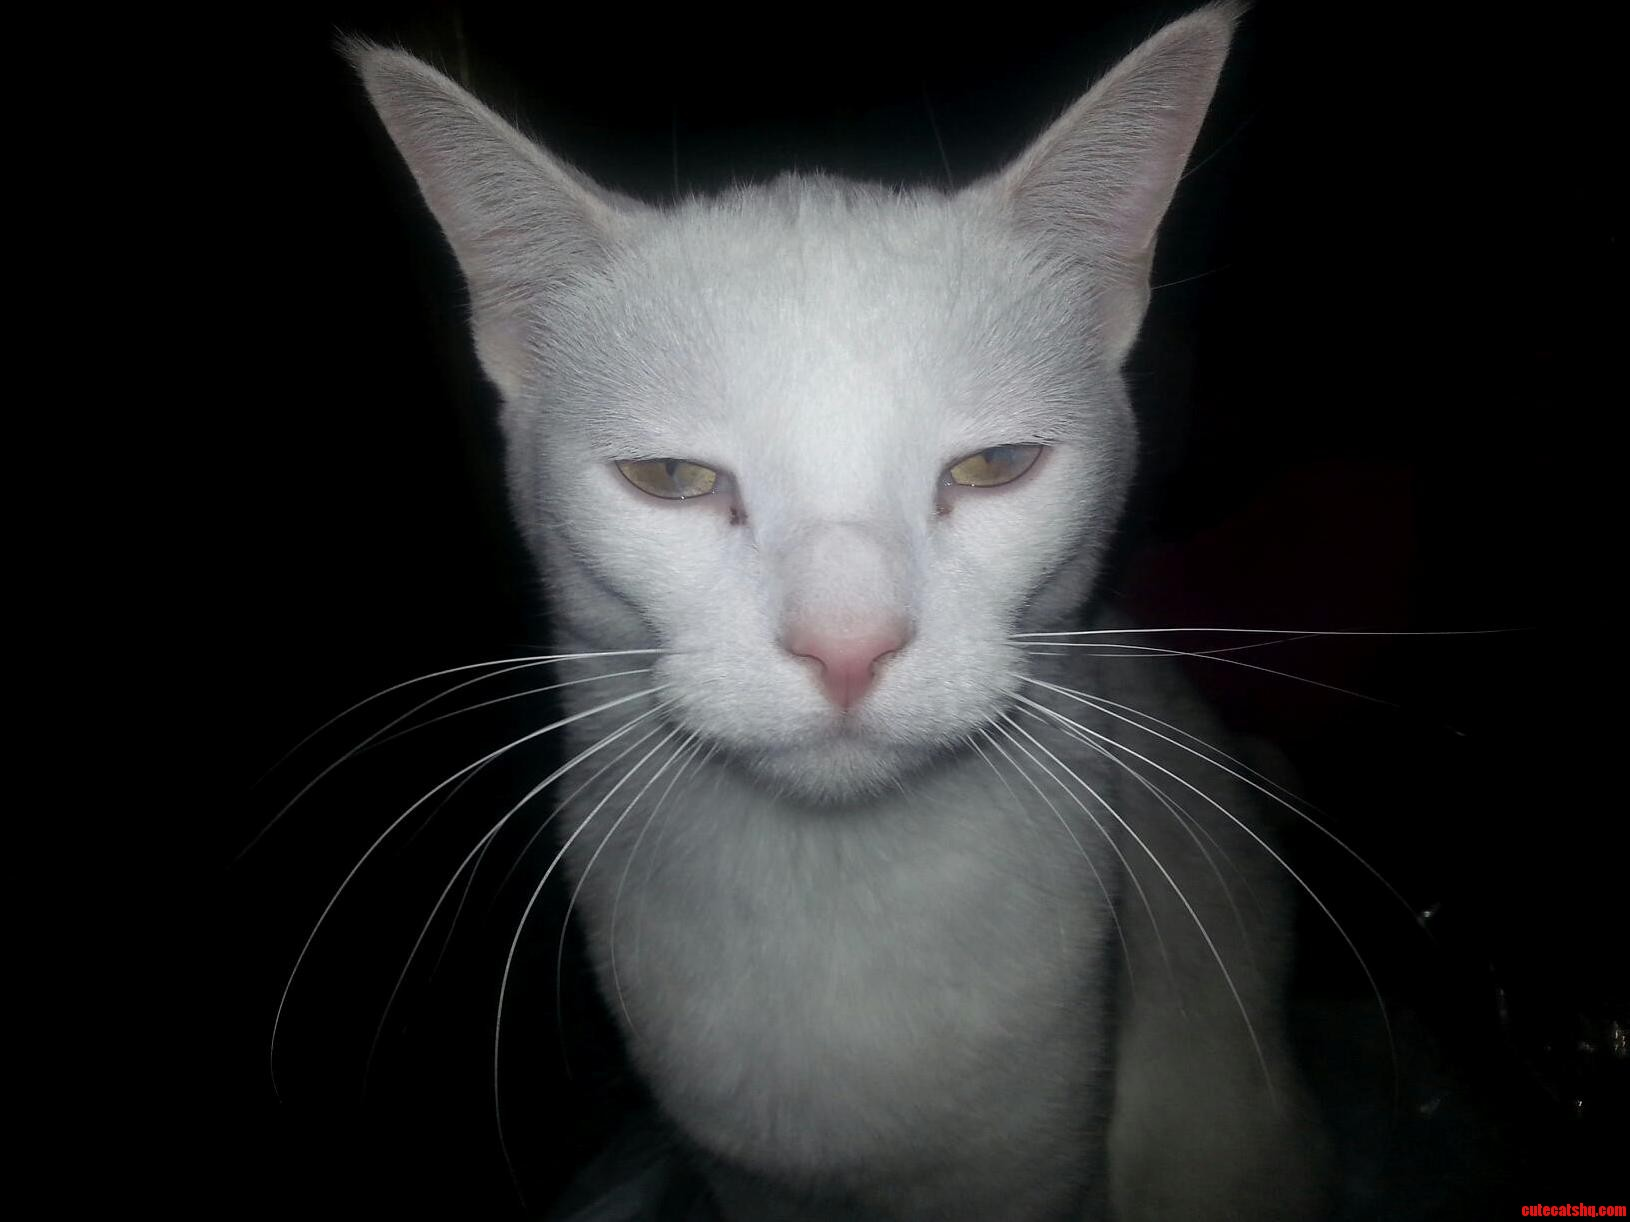 My Sisters Cat Does Not Like His Picture Taken Apparently.